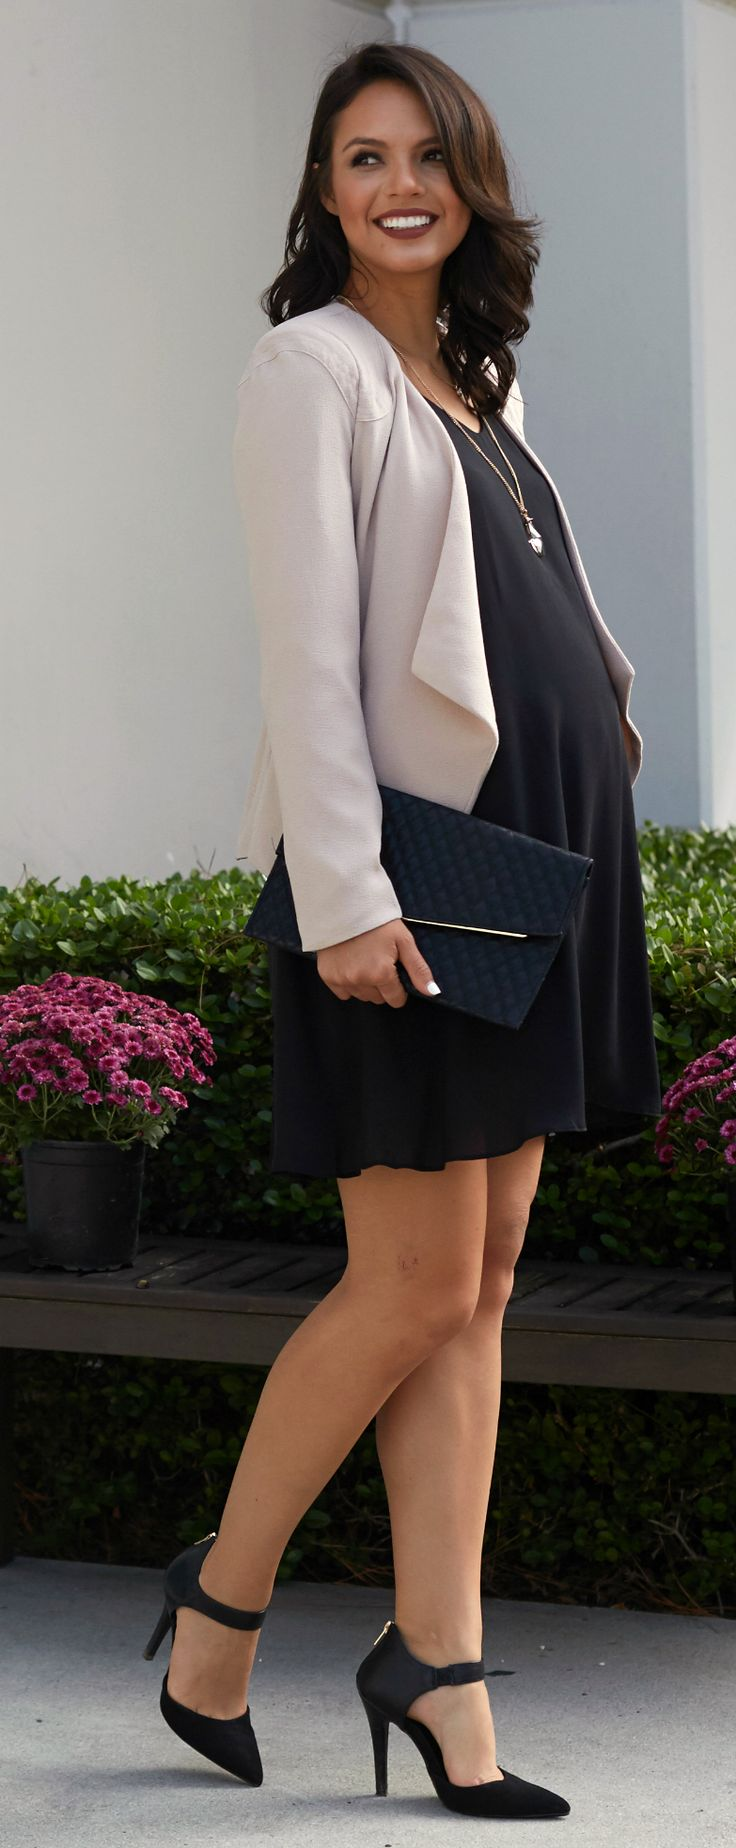 The chic expecting mother needs an affordable, stylish work wear wardrobe and PinkBlush is just the stop. Find it all from maternity dresses and maternity blazers to maternity dress pants and maternity blouses